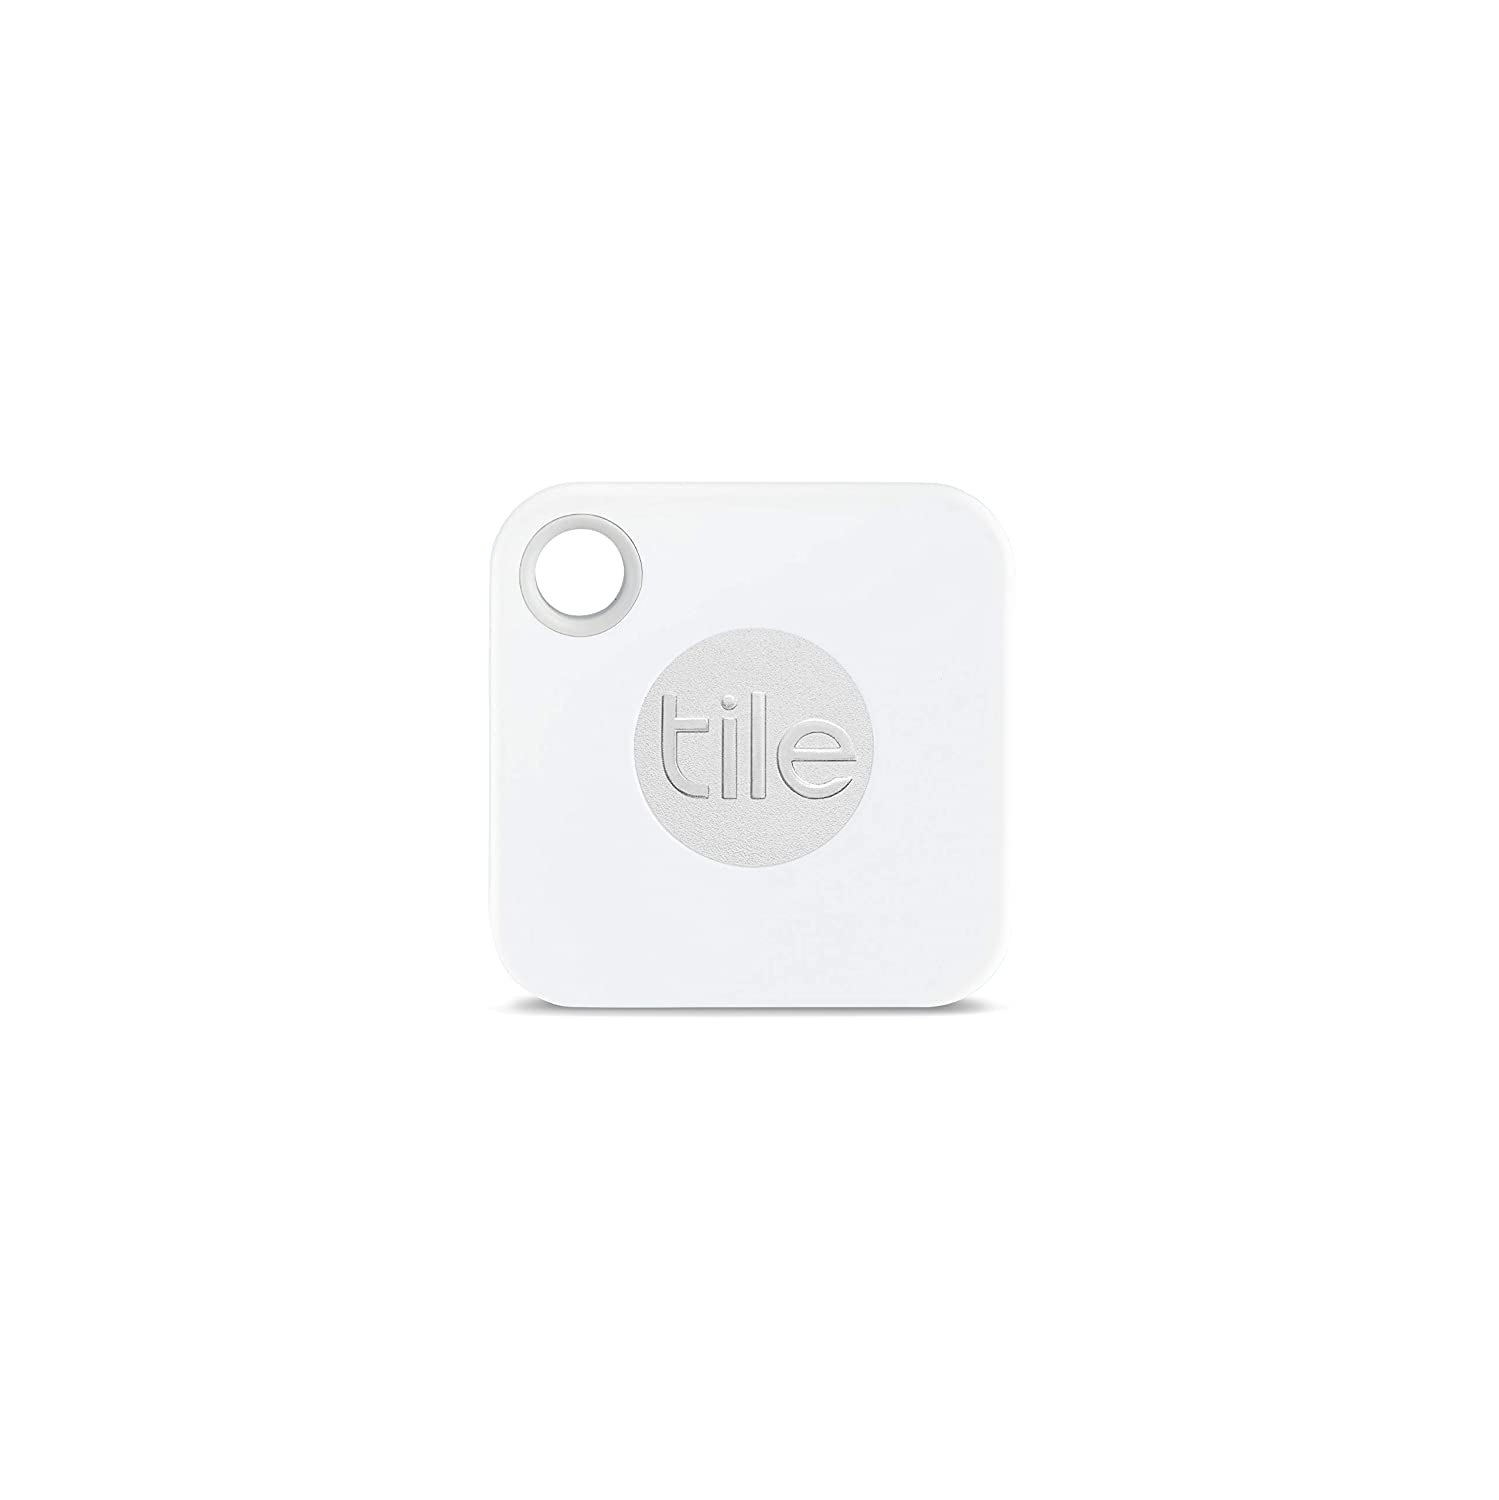 Tile Mate with Replaceable Battery}